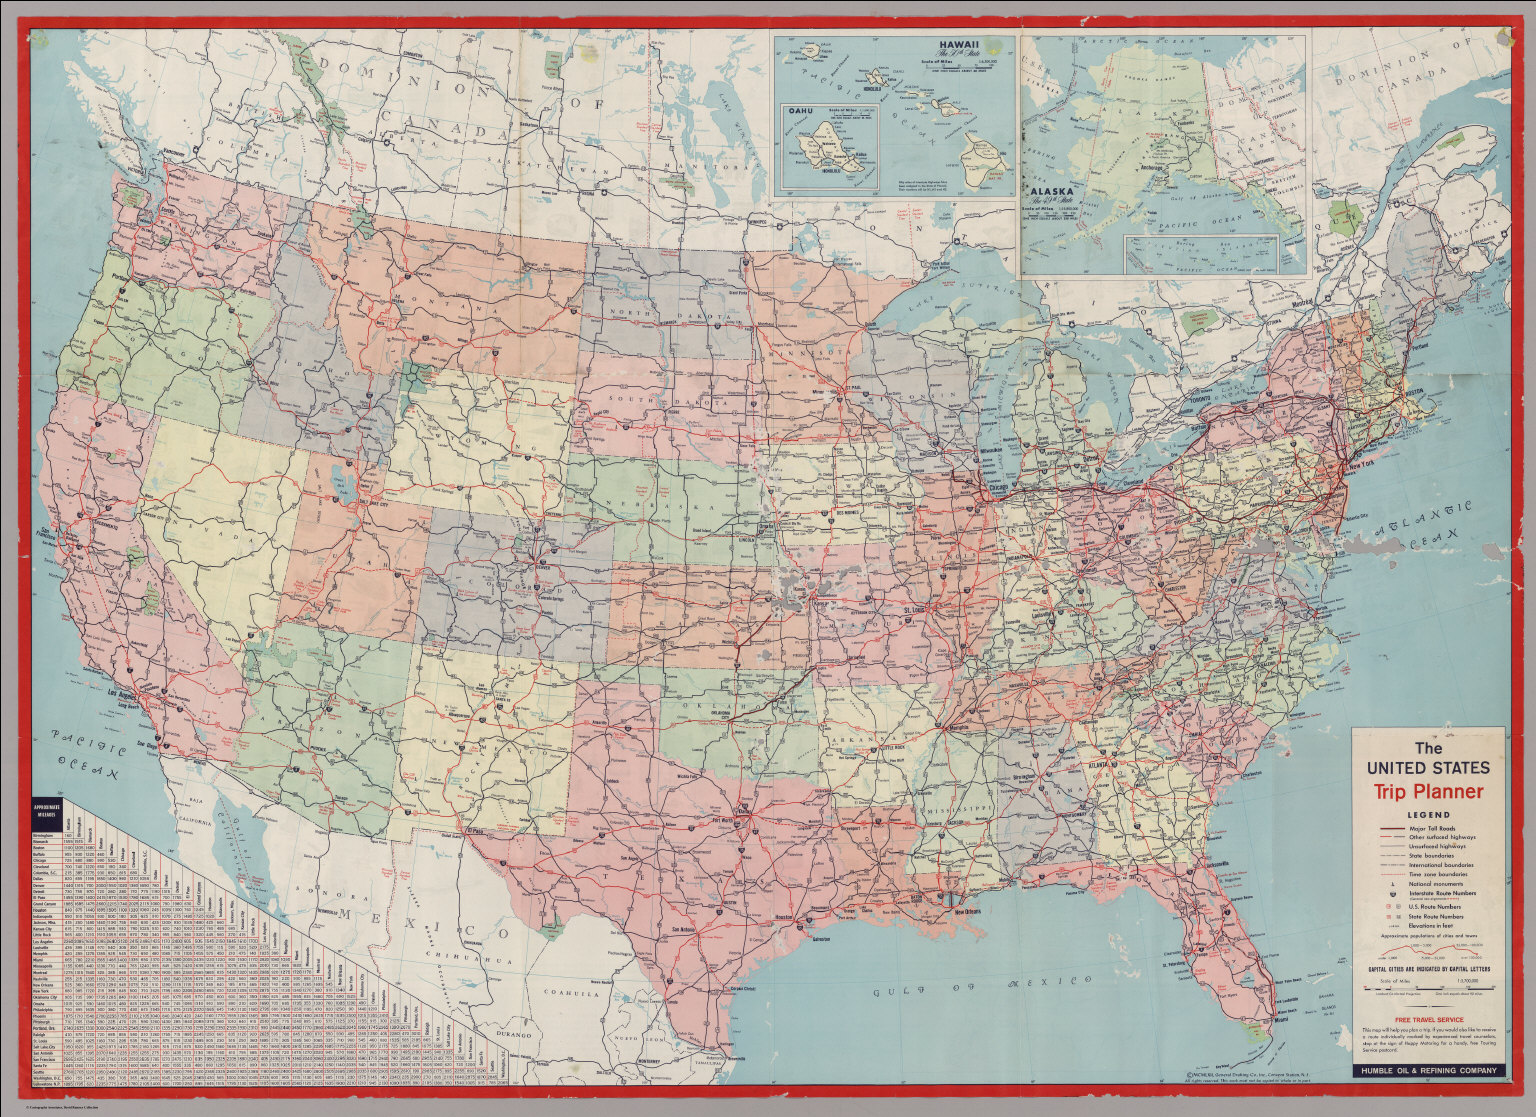 The United States Trip Planner   David Rumsey Historical Map Collection VIEW IN GEOREFERENCER BUY PRINT EXPORT